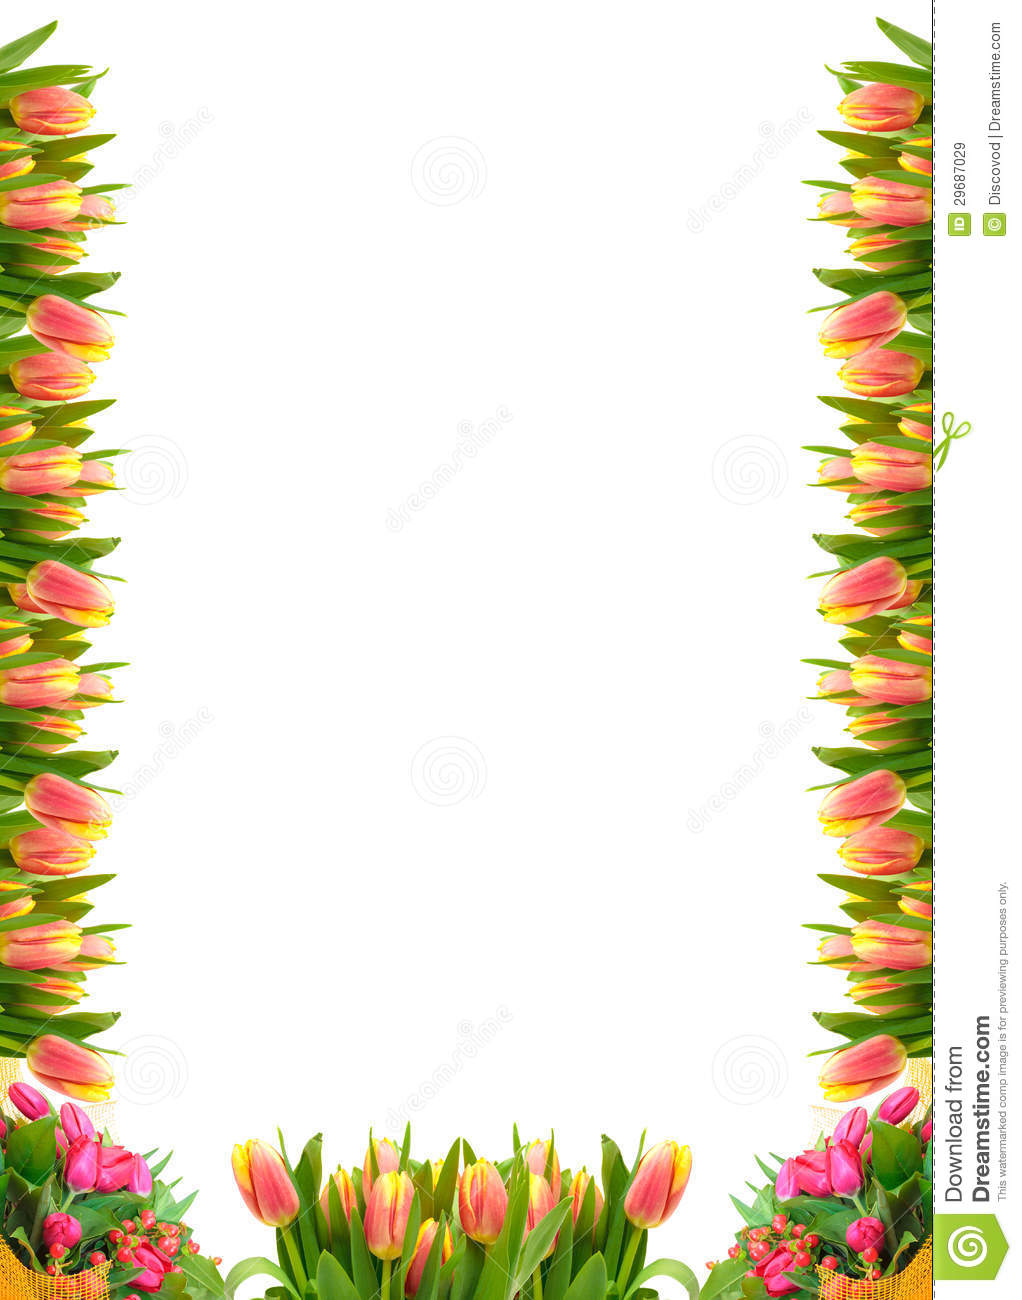 Frame Of Tulip Flowers Royalty Free Stock Images - Image: 29687029